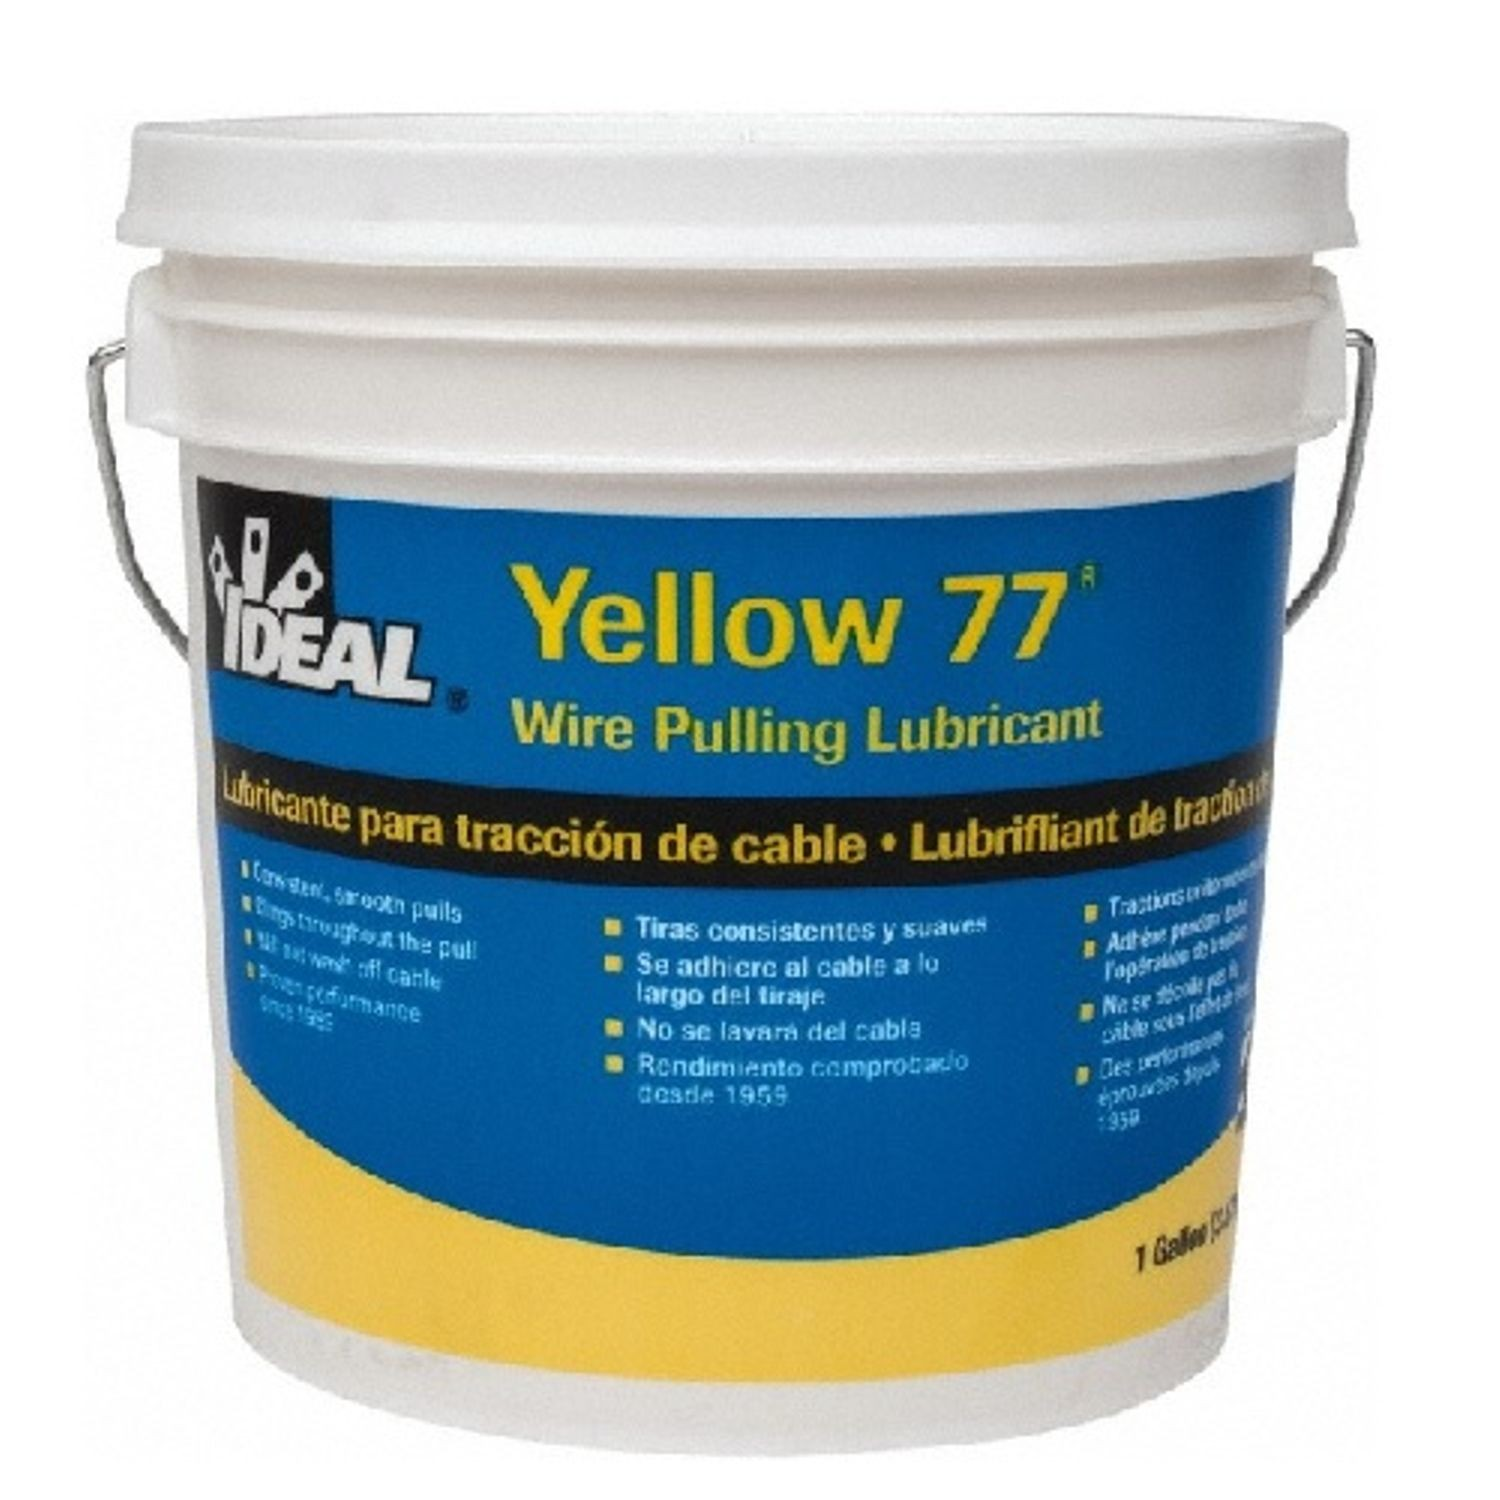 IDEAL® Yellow 77® 31-351 Wire Pulling Lubricant, 1 gal Pail, Paste ...